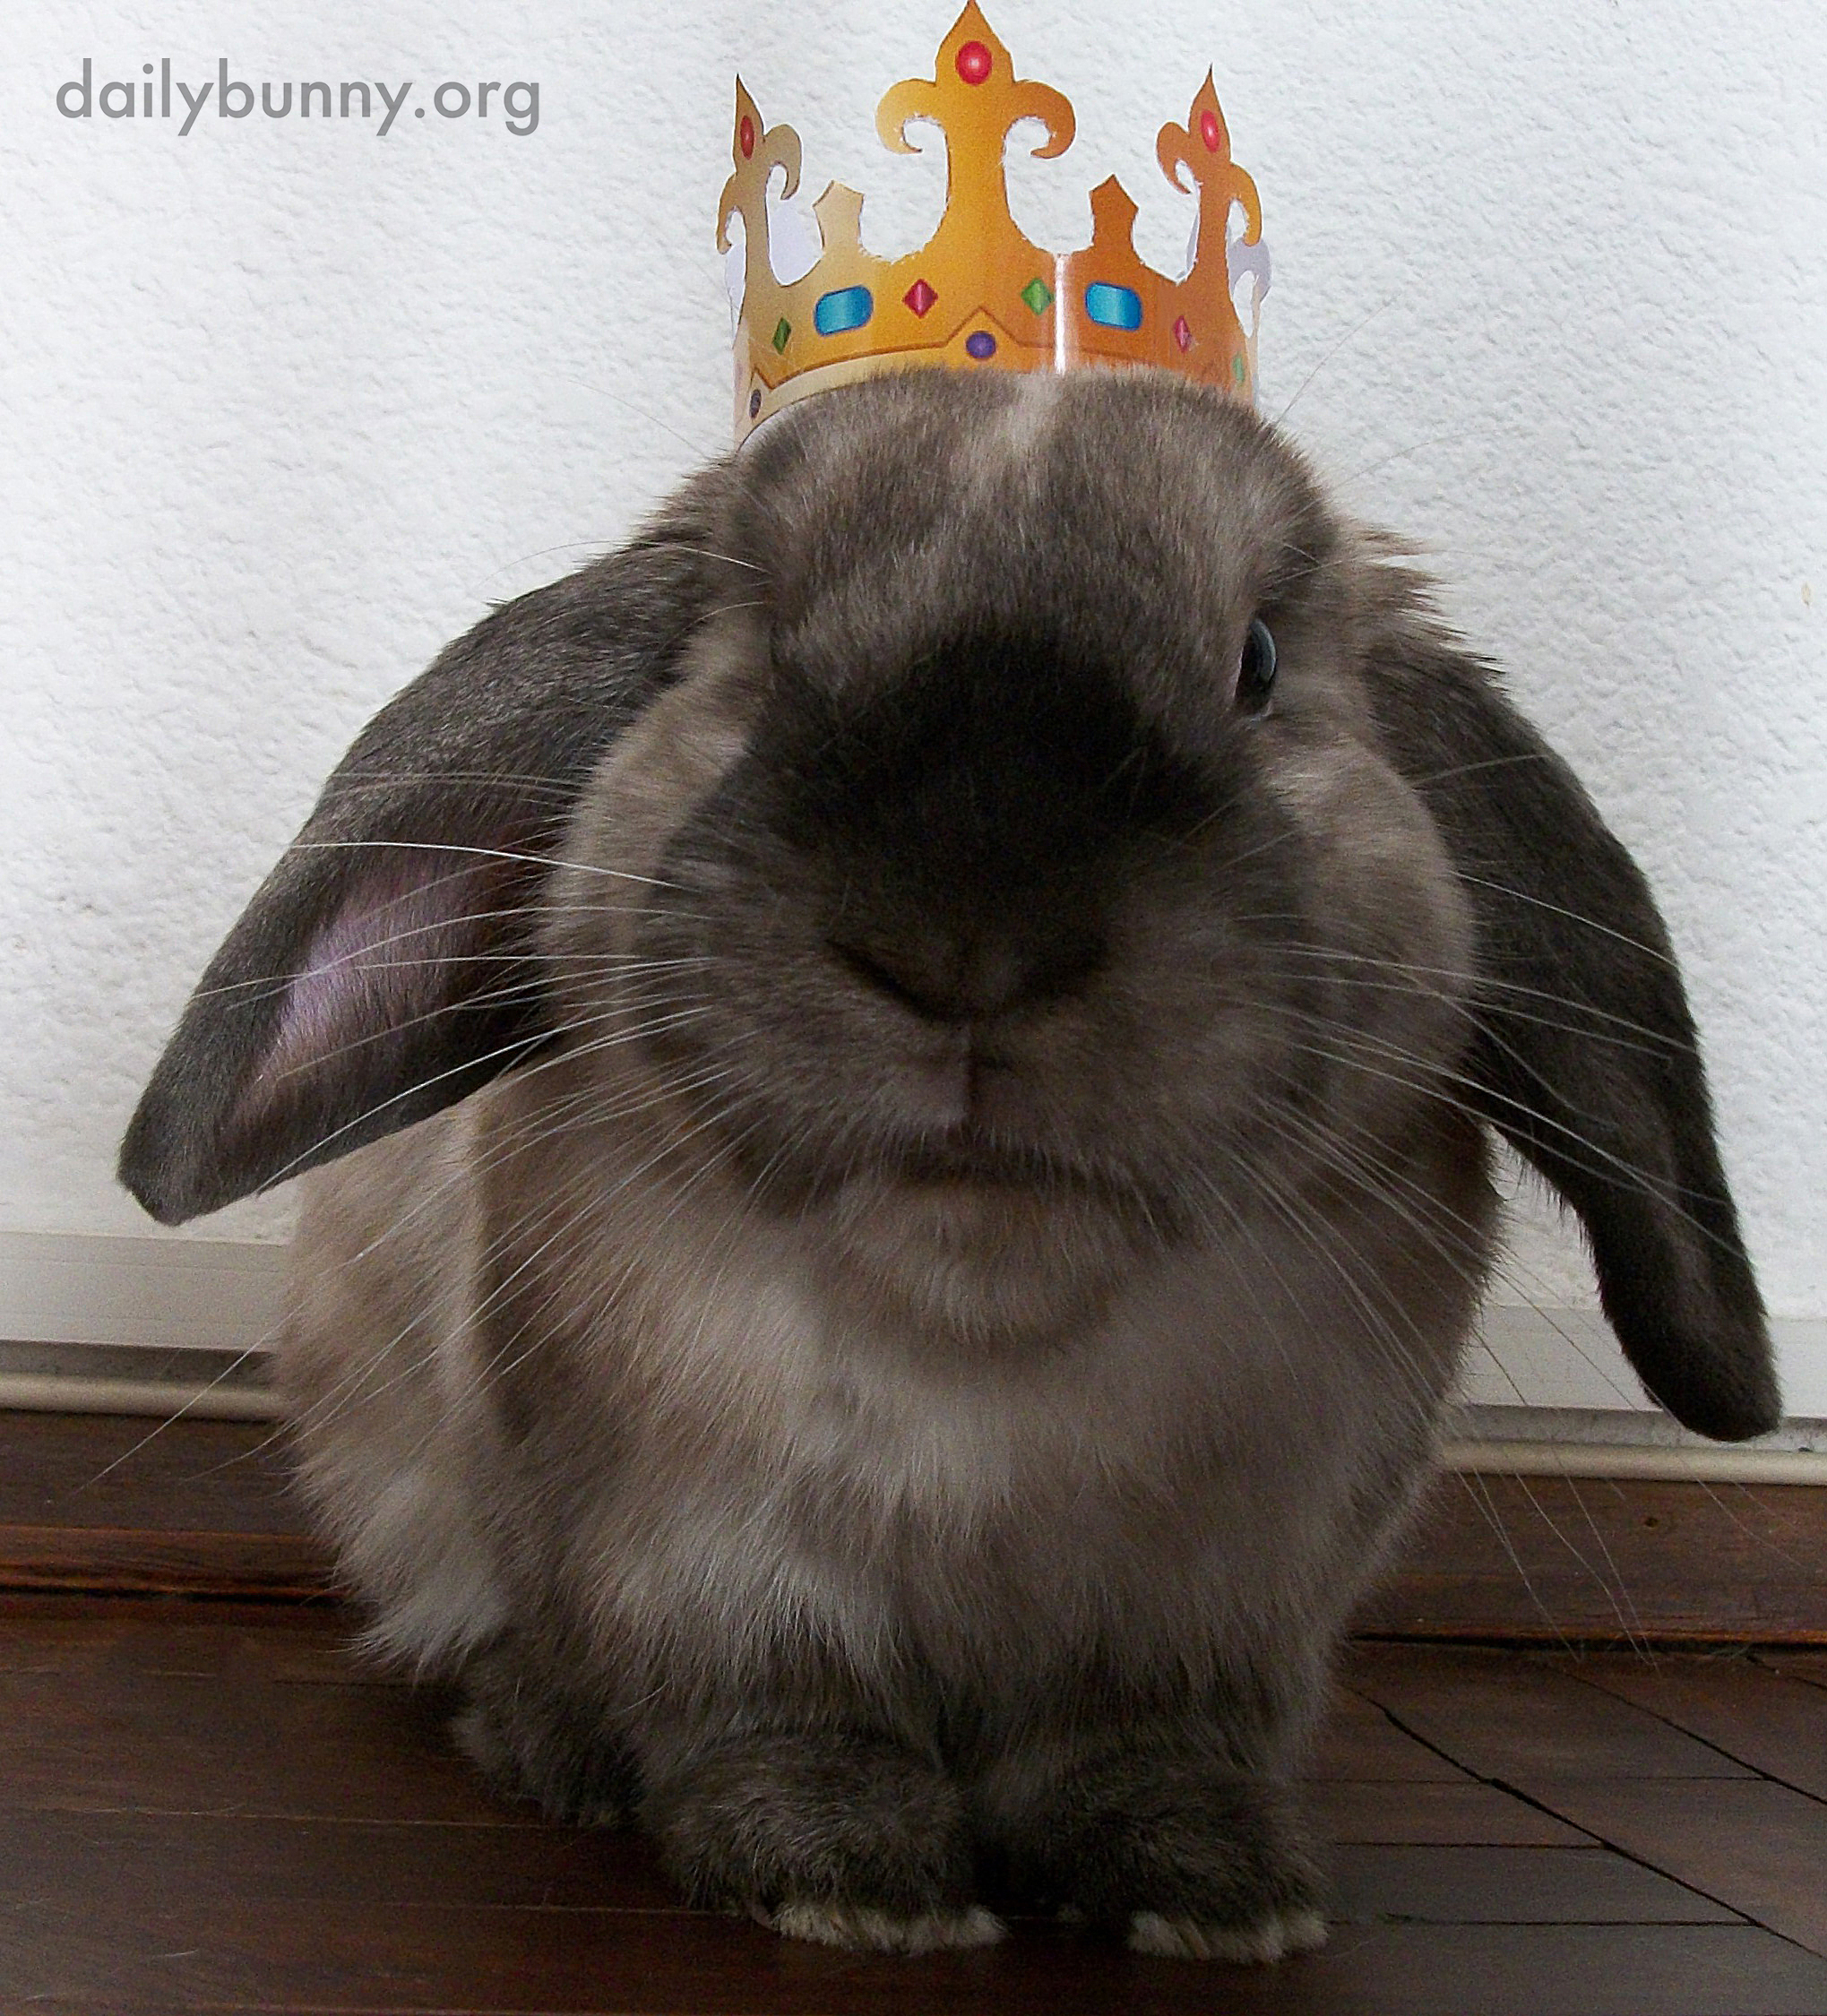 On His Birthday, All Bow to King Bunny